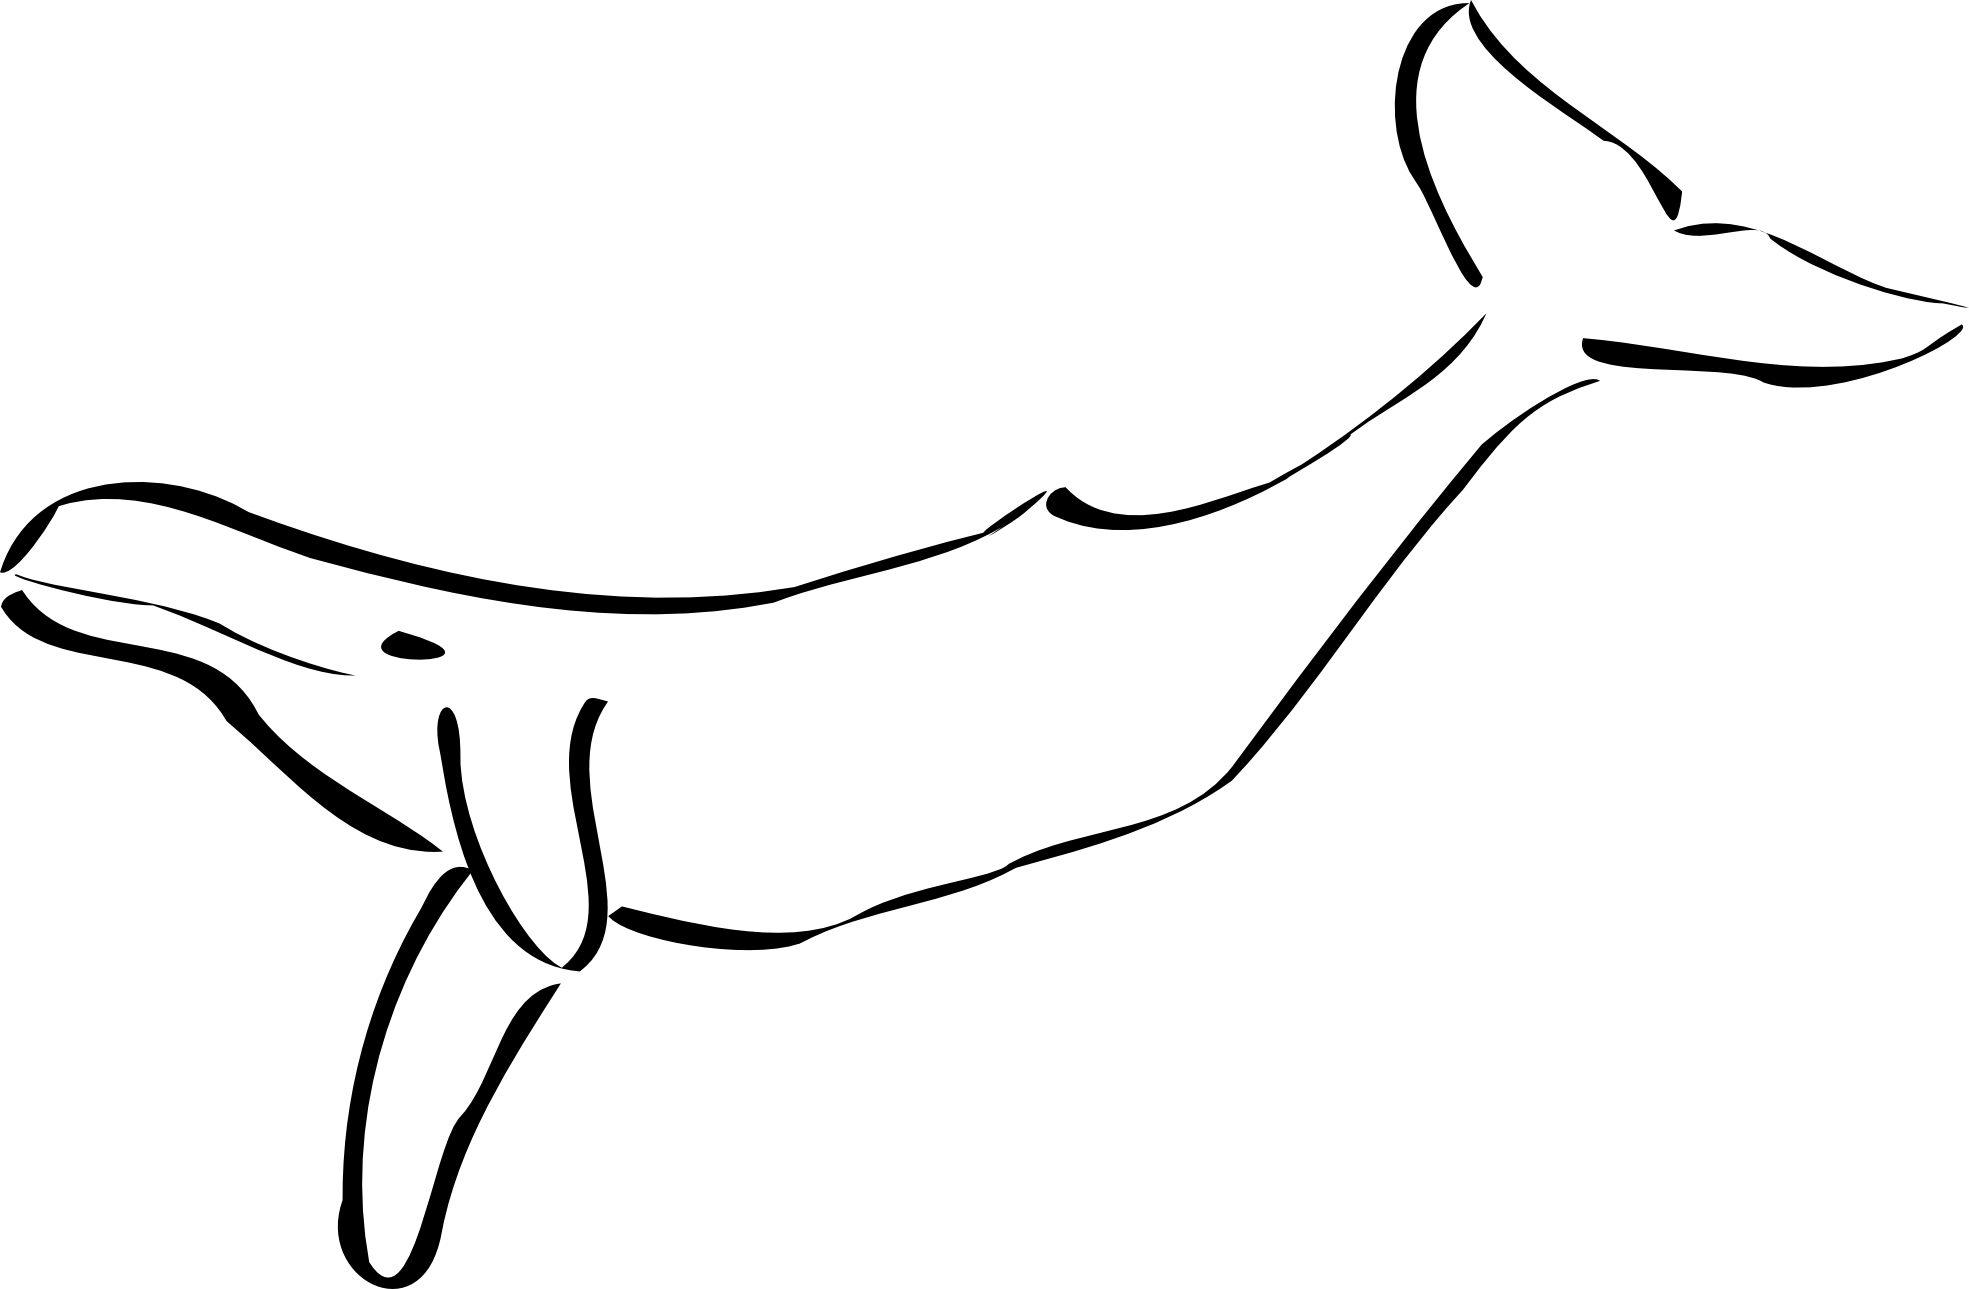 -and-white-walrus-clipart-black-and-white-whale black white line art    Ocean Clip Art Black And White